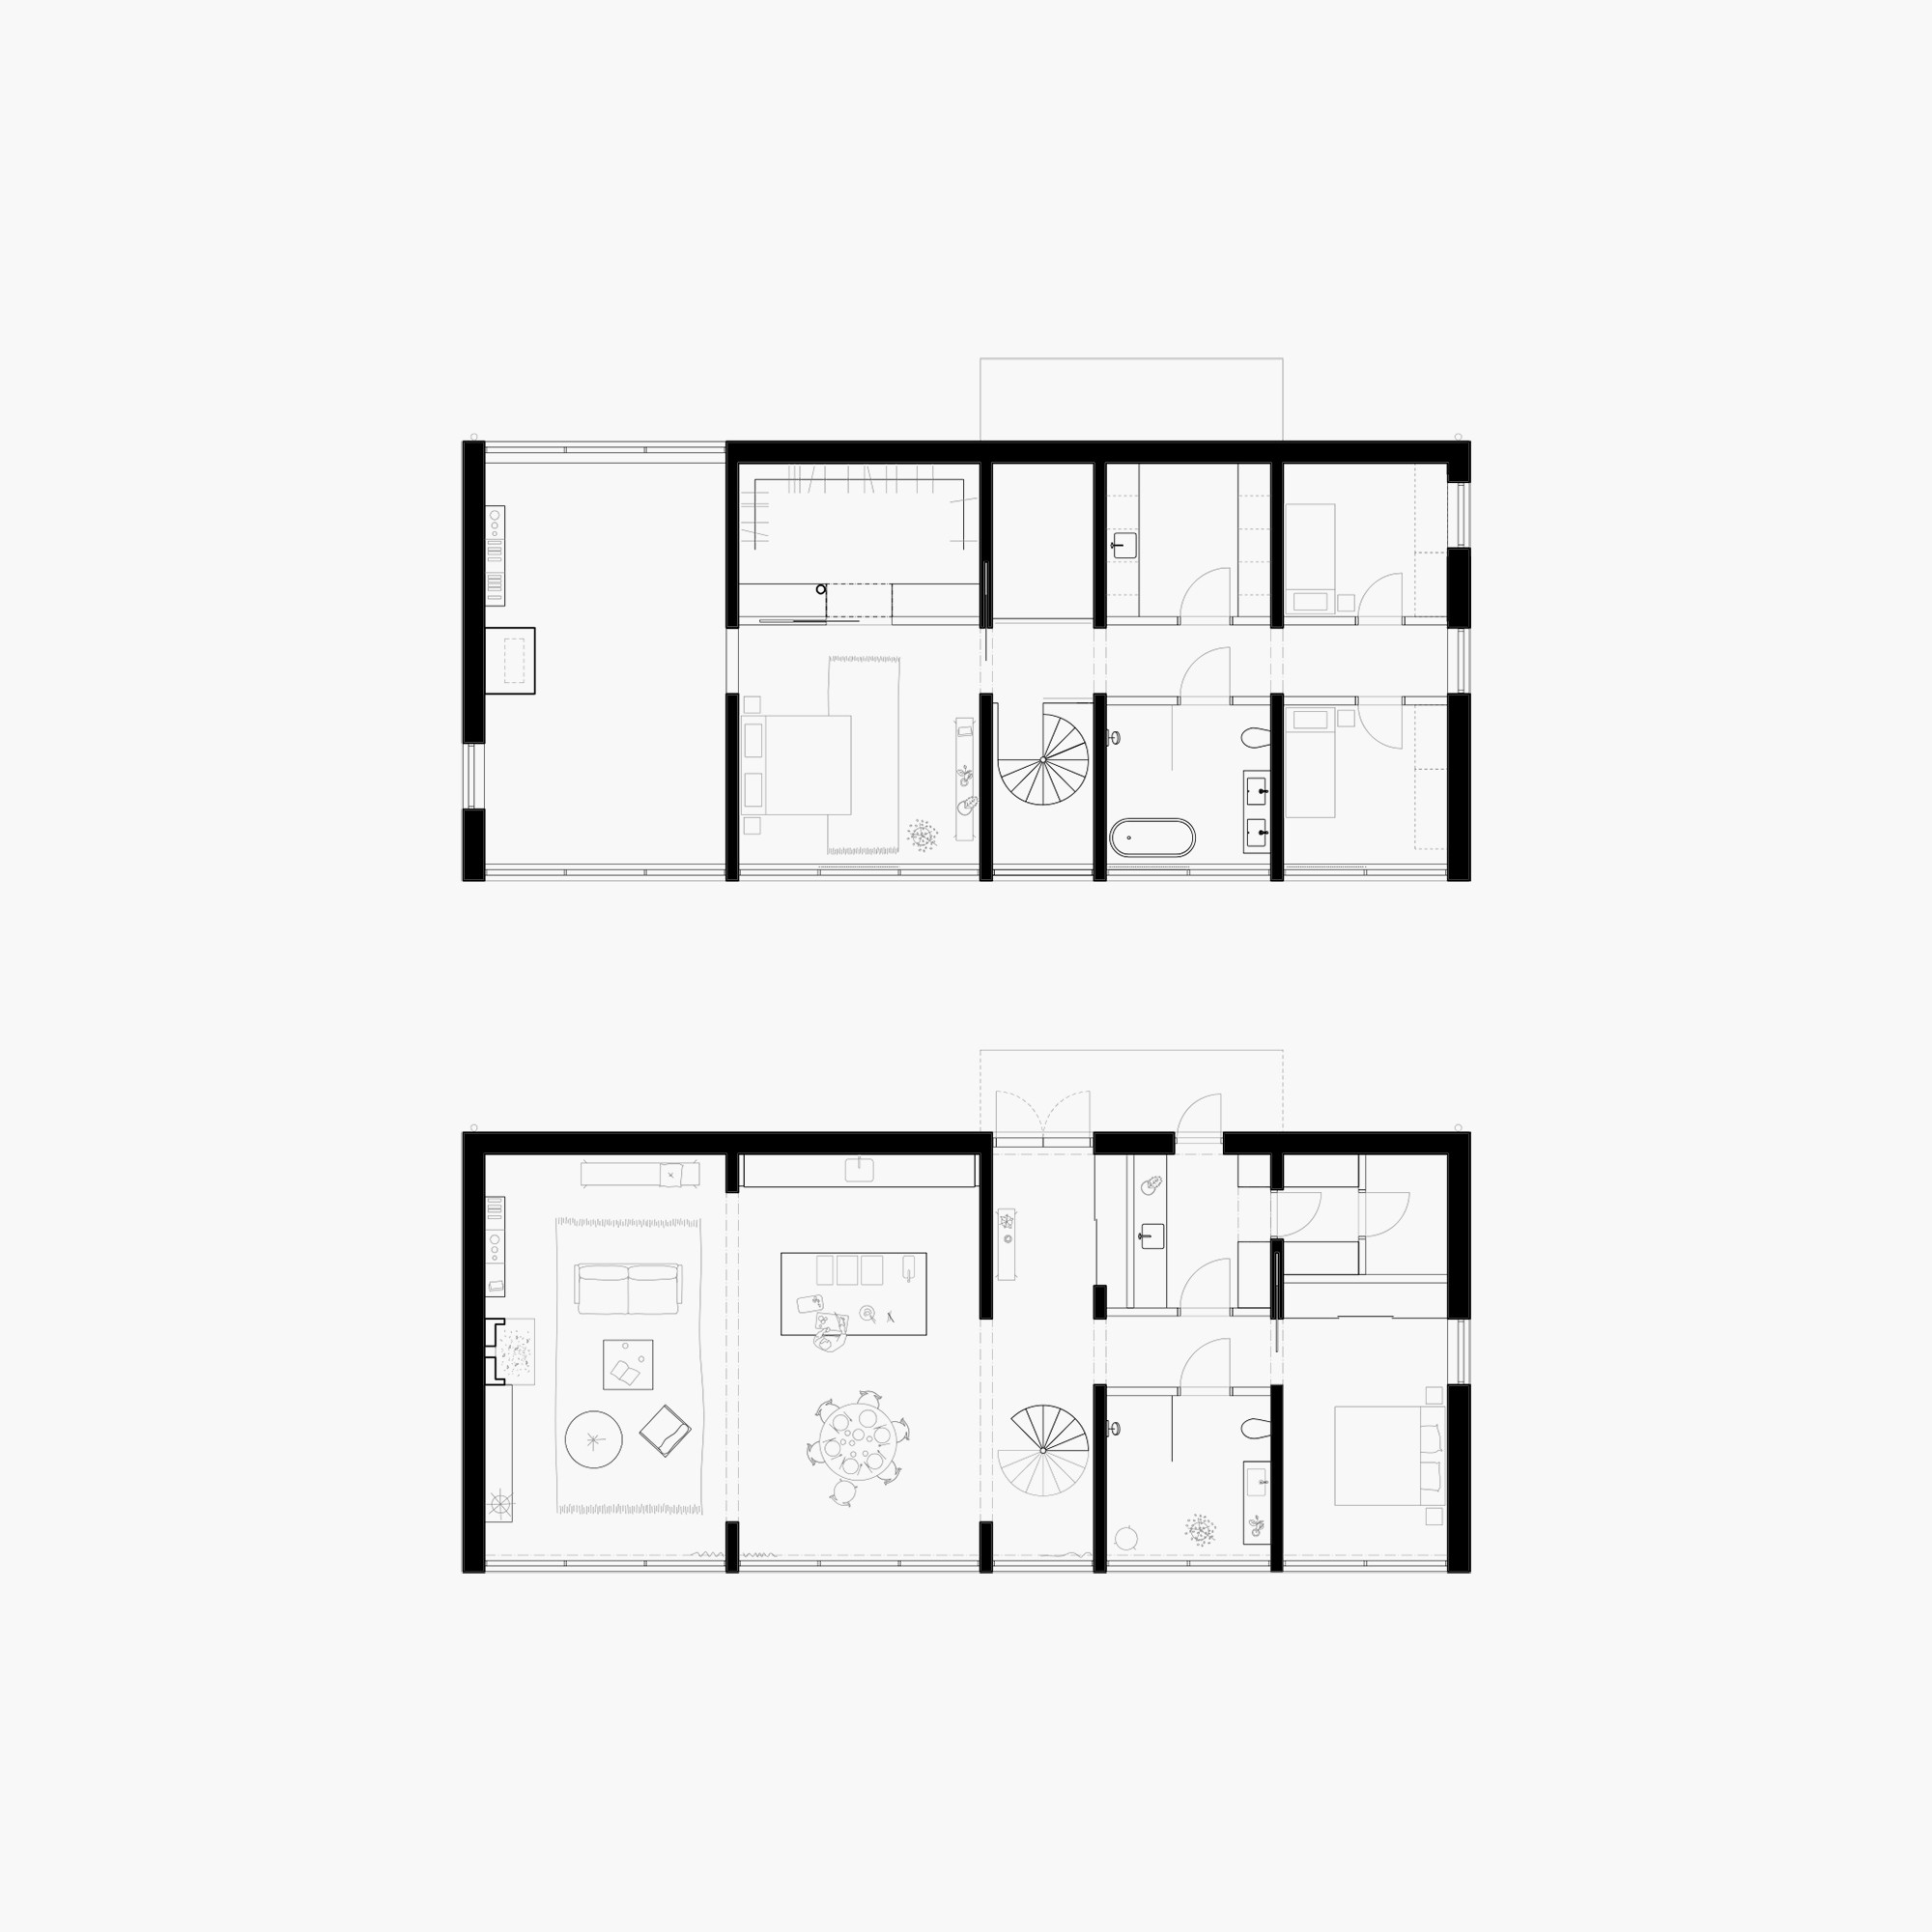 Six walls house arrhov frick arkitektkontor archdaily for Wall homes floor plans